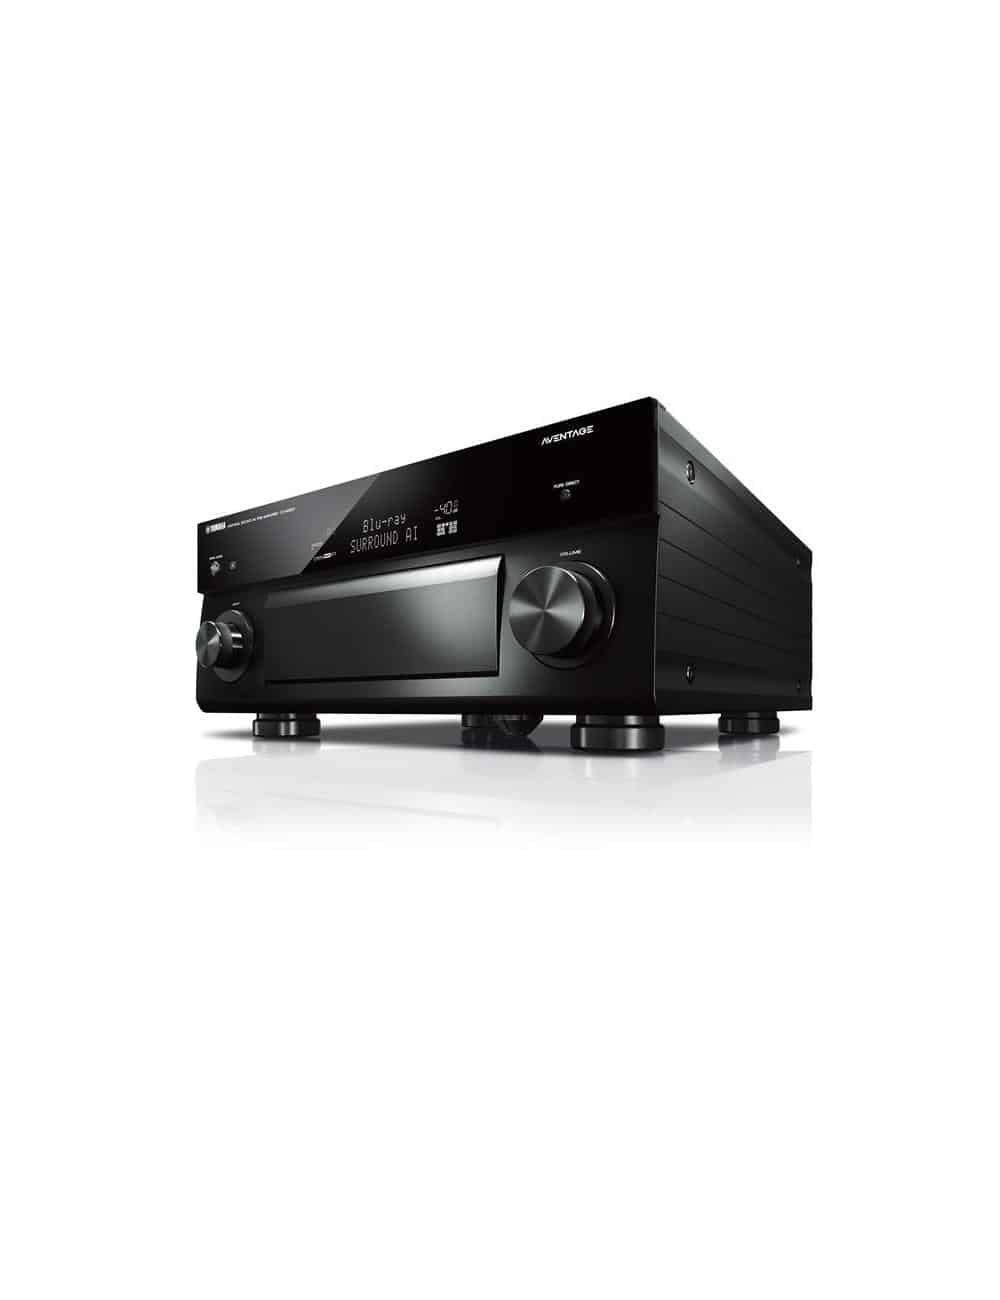 Preamplificatore AV 11.2 canali, uscite bilanciate, 4K Ultra HD con Audio 3D, Yamaha CX-5200, nero